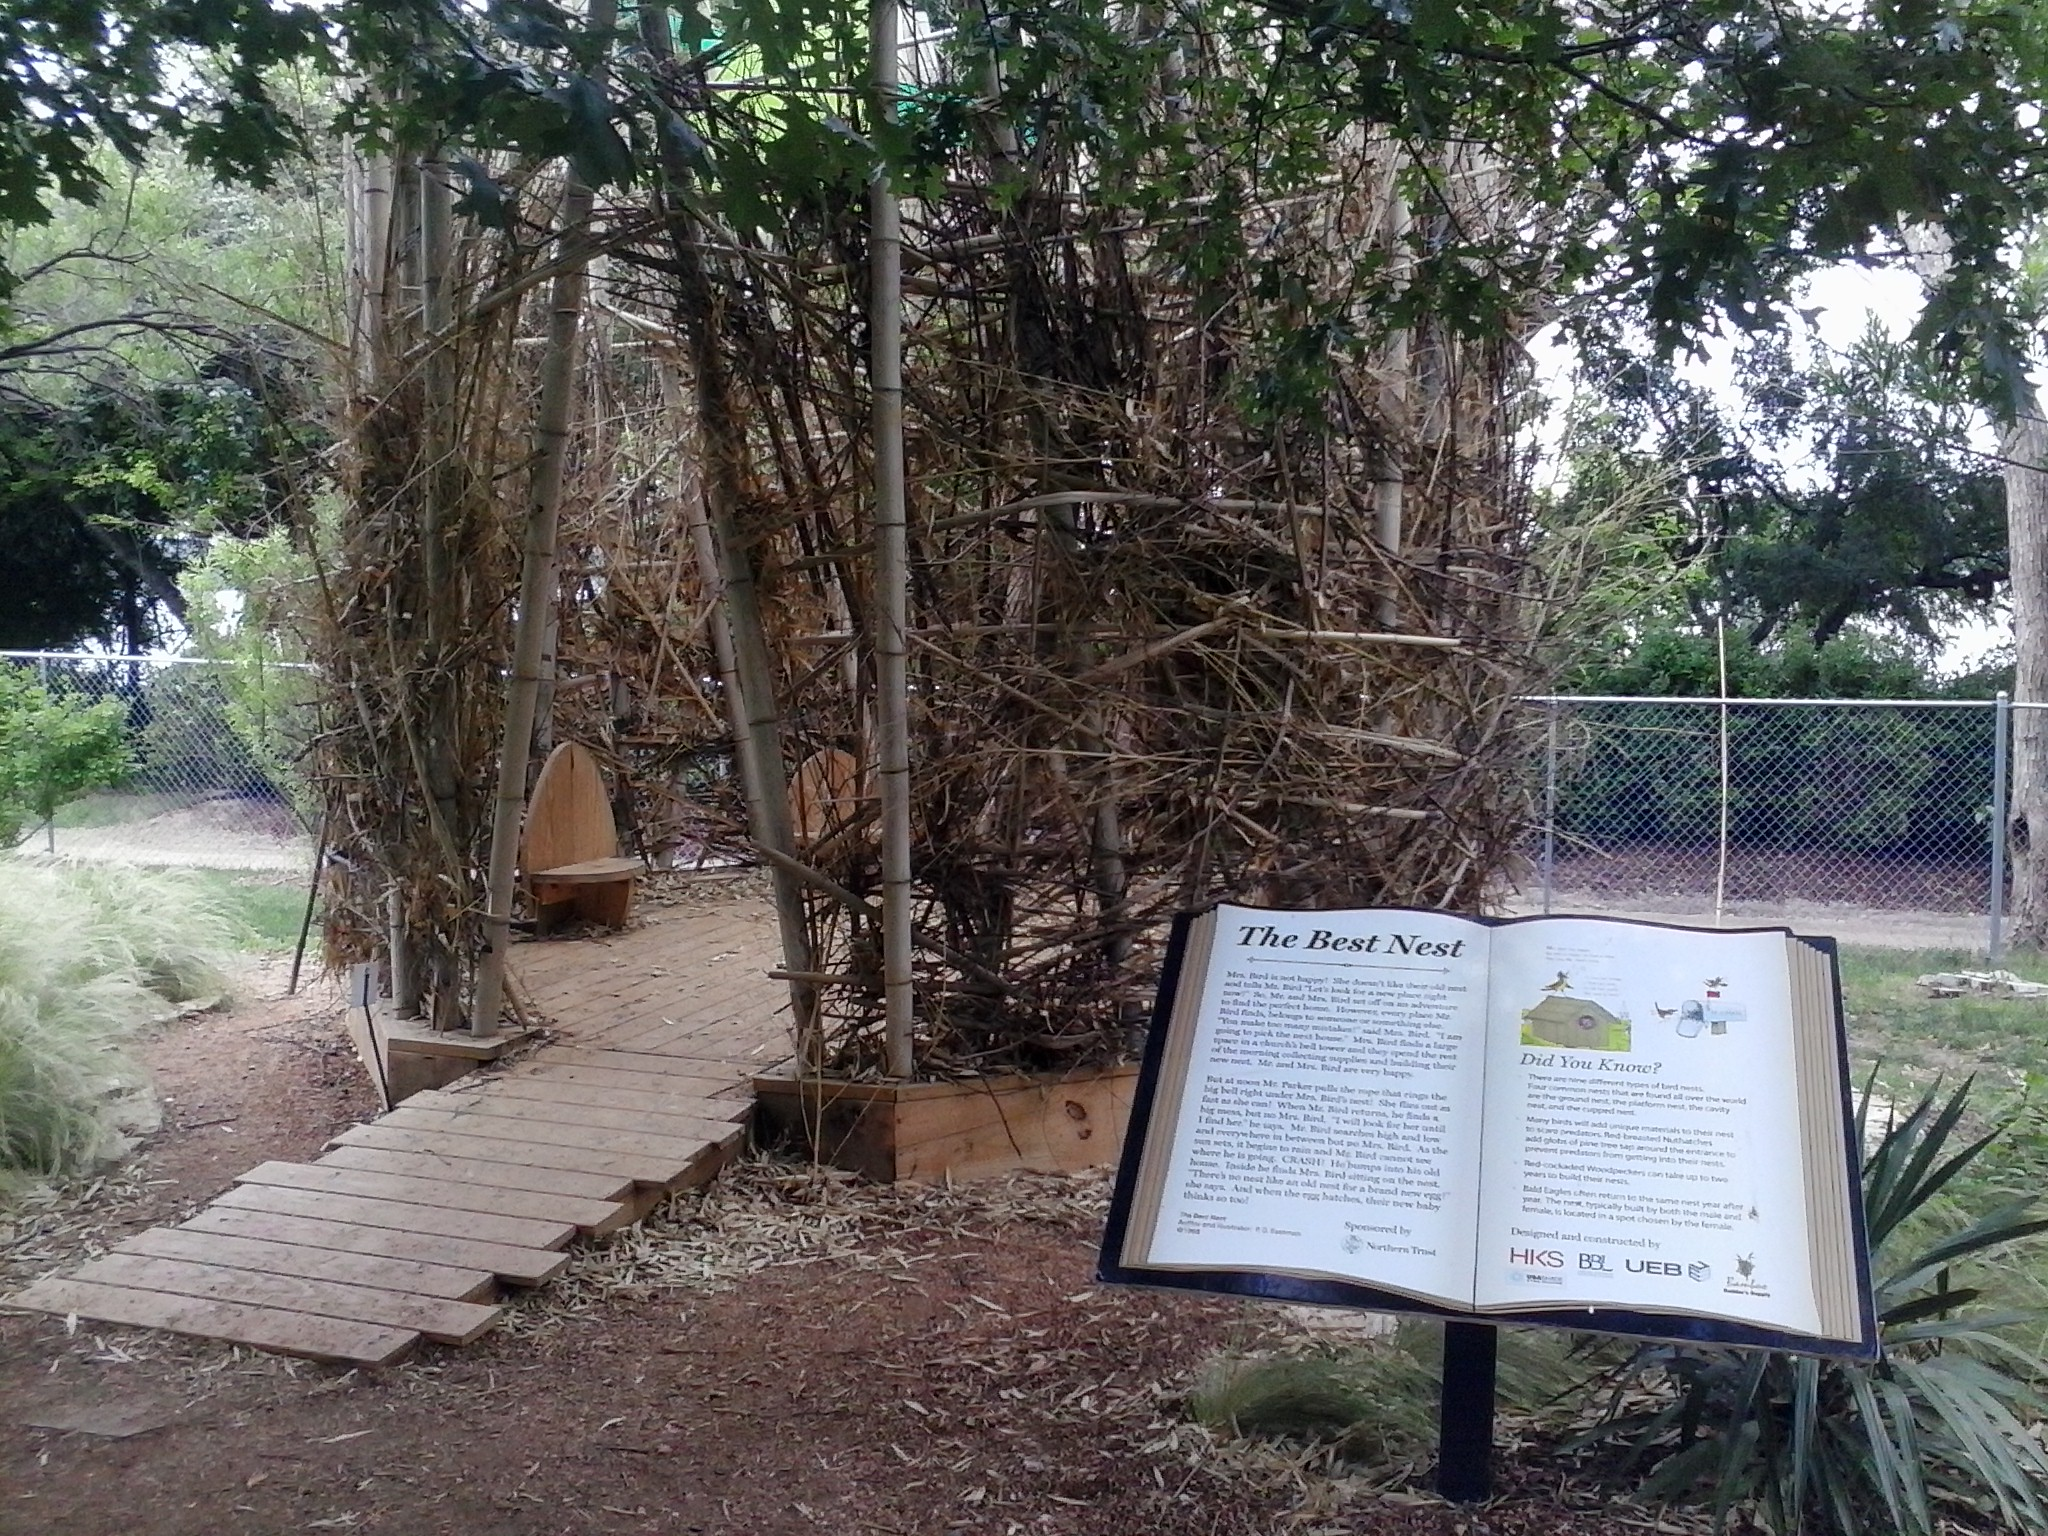 A nest house in the bird exhibit.